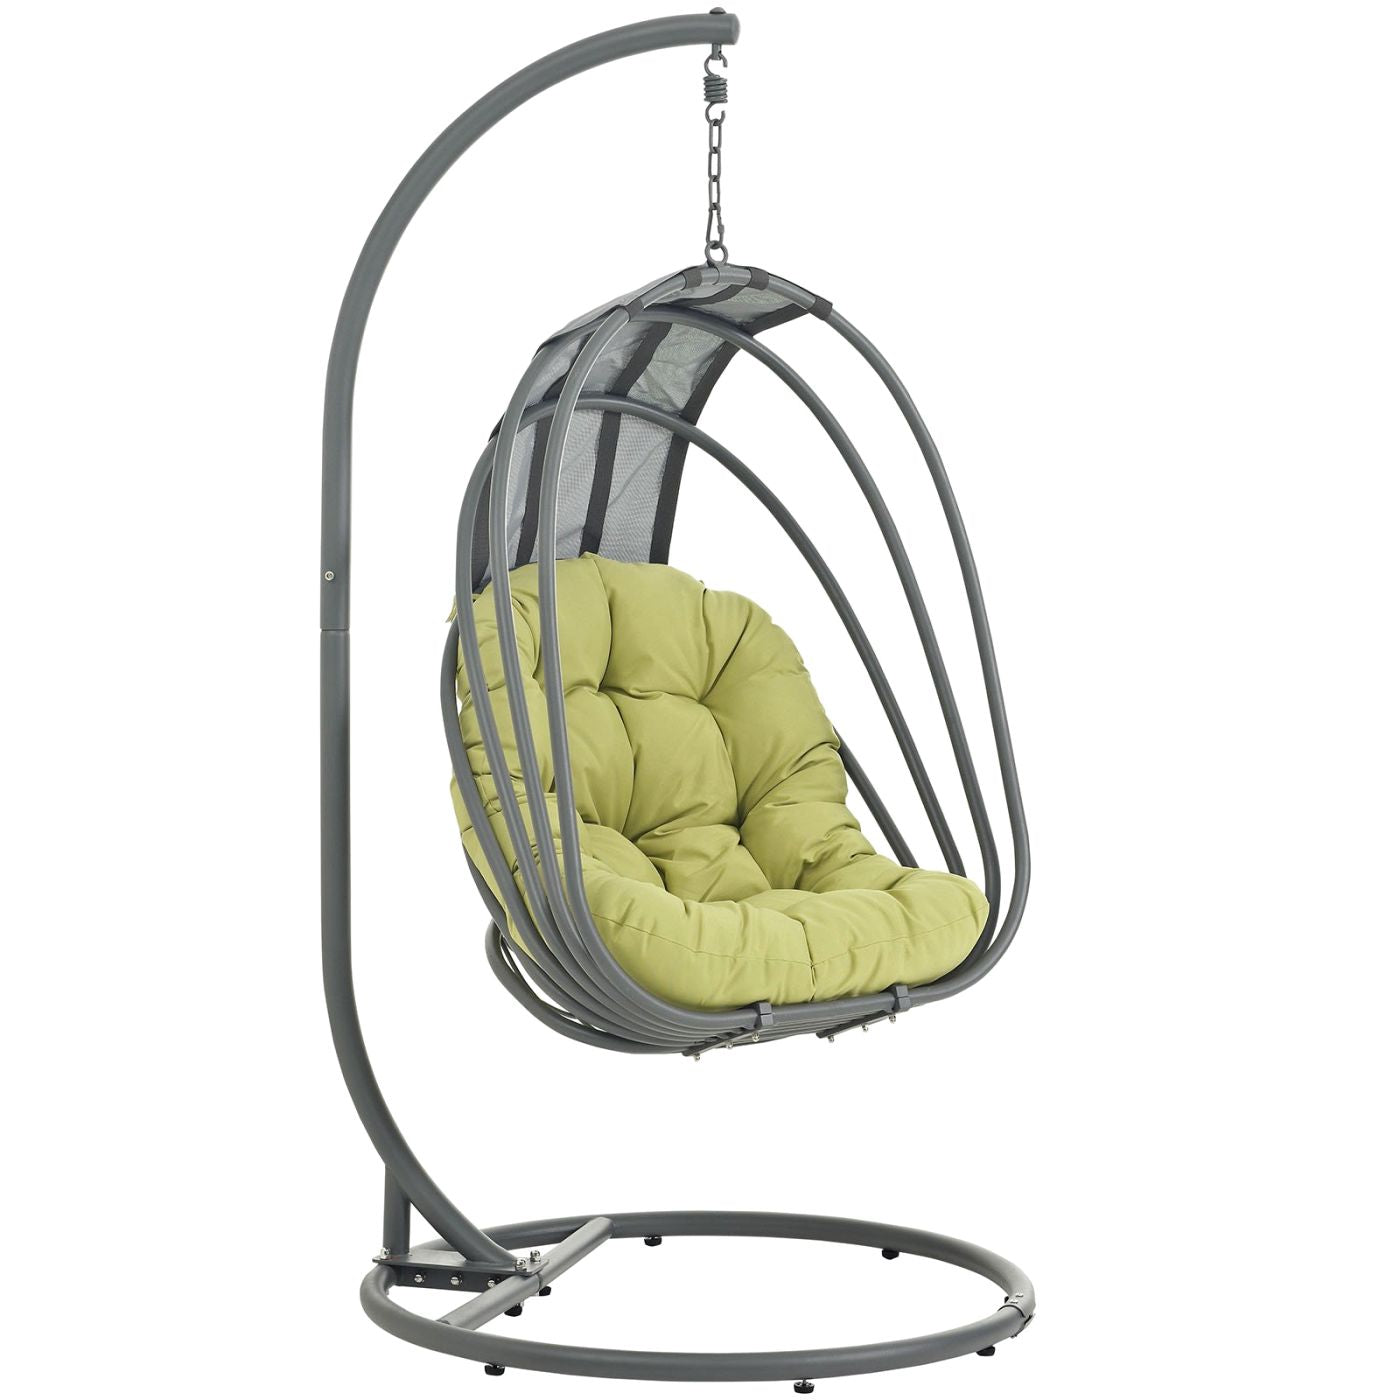 whisk outdoor patio swing chair with stand peridot lounge - Patio Swing Chair